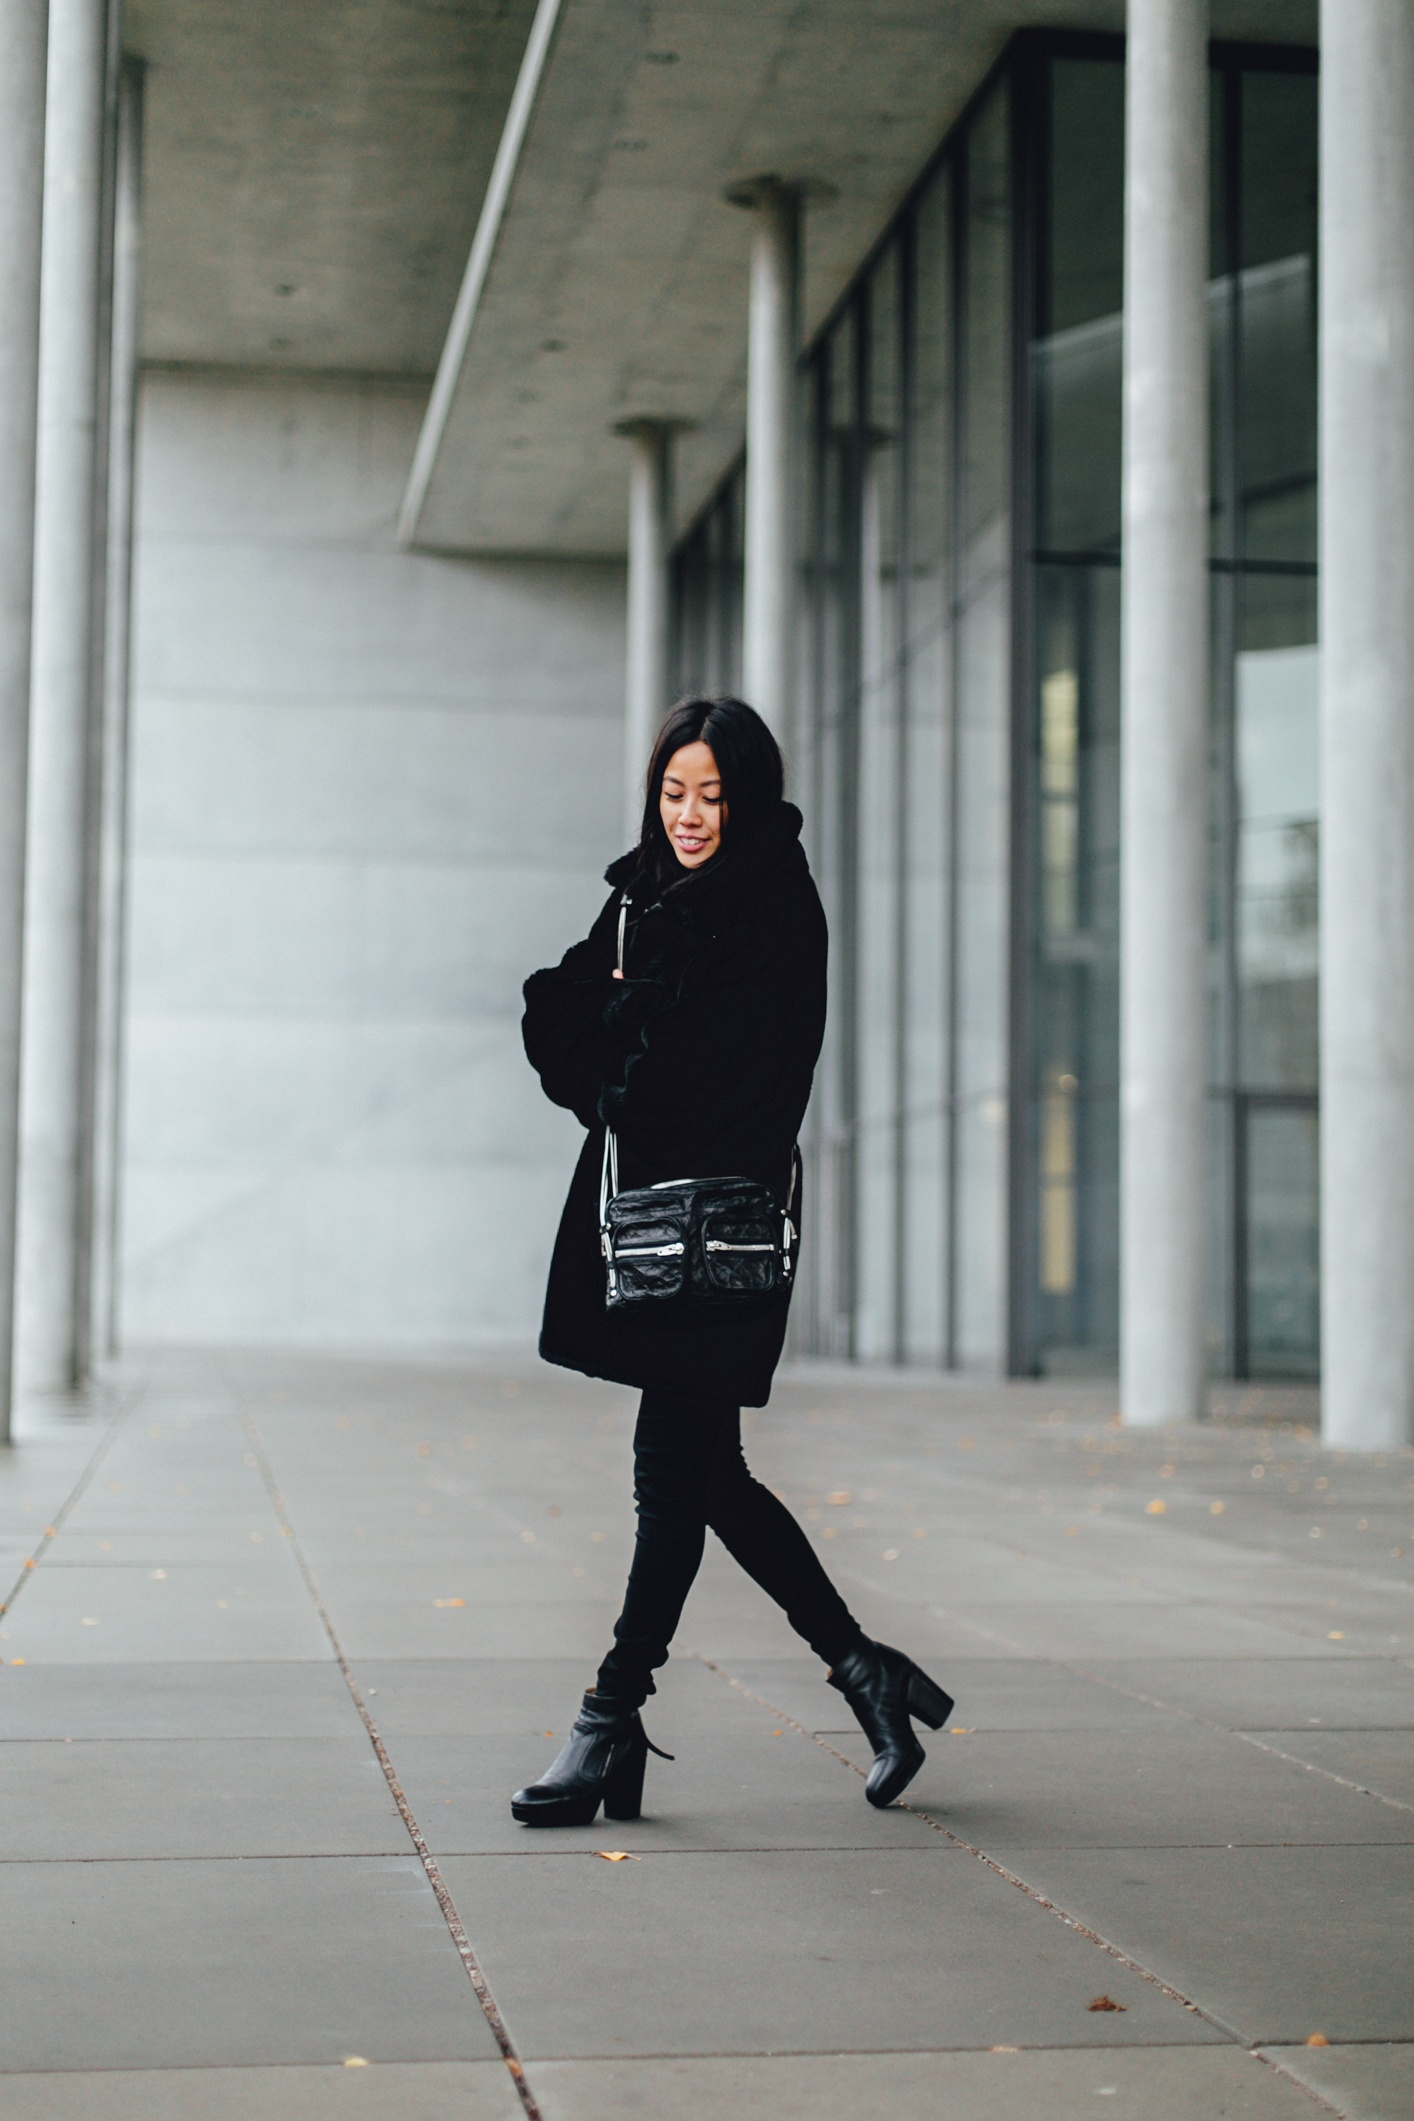 IHEARTALICE.DE – Fashion & Travel Blog: All Black Everything Look wearing Fluffy Teddy-Coat / How to stay warm in Winer?